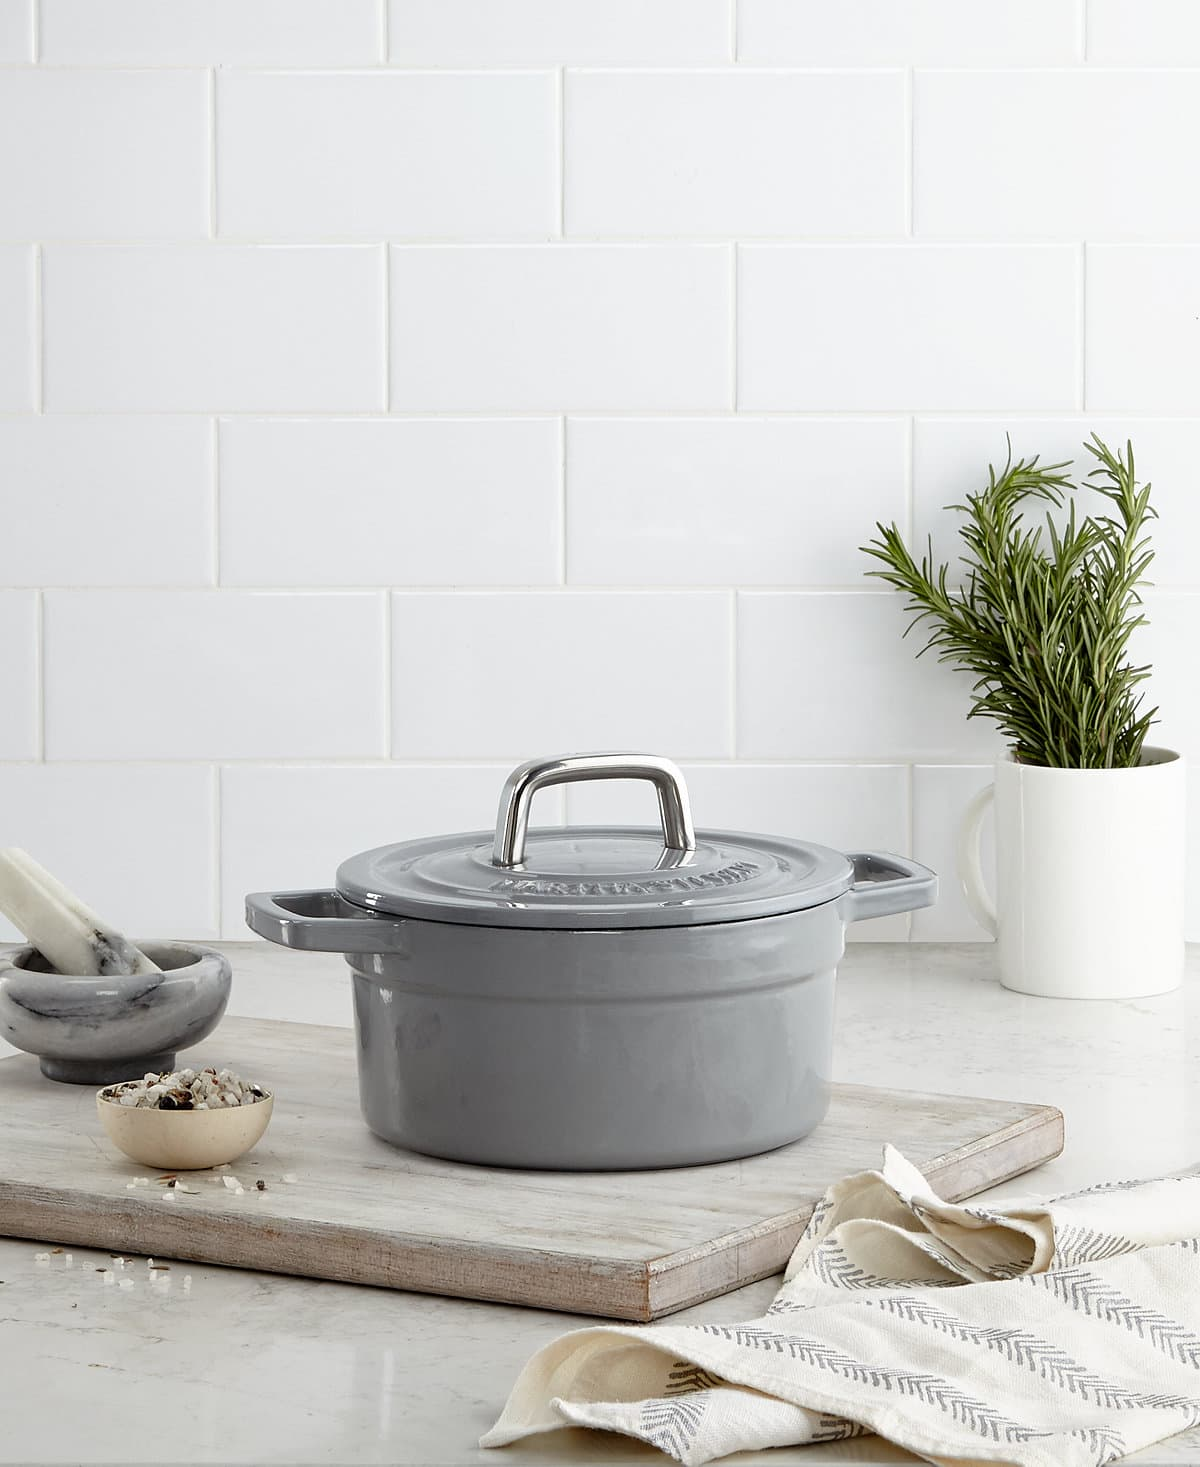 Collector's Enameled Cast Iron 2 Qt. Round Dutch Oven $34.99 Shipped